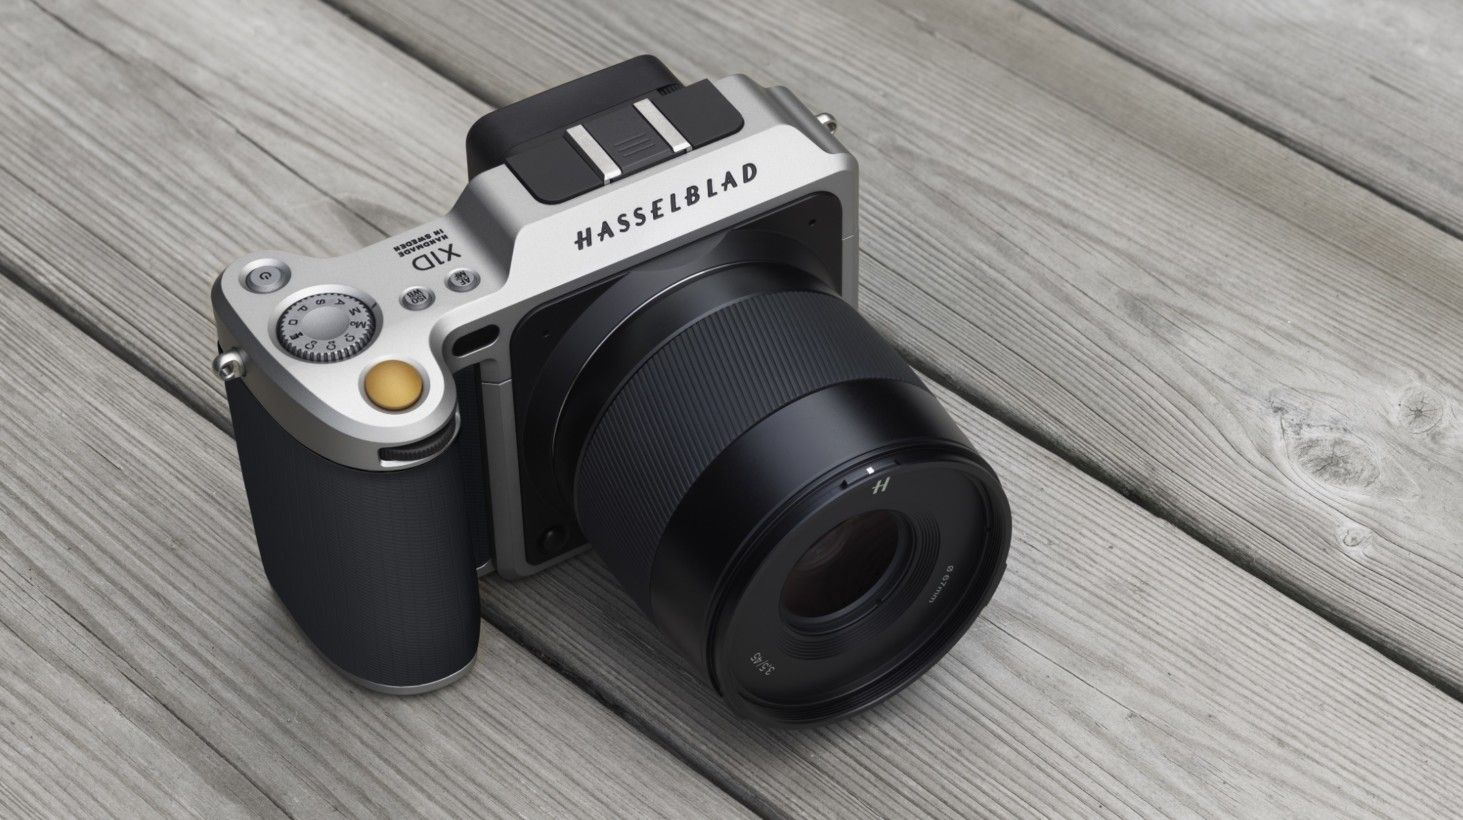 Hasselblad S 9 000 X1d Has The Largest Sensor Ever Put Into A Mirrorless Camera Digital Camera Mirrorless Camera Hasselblad